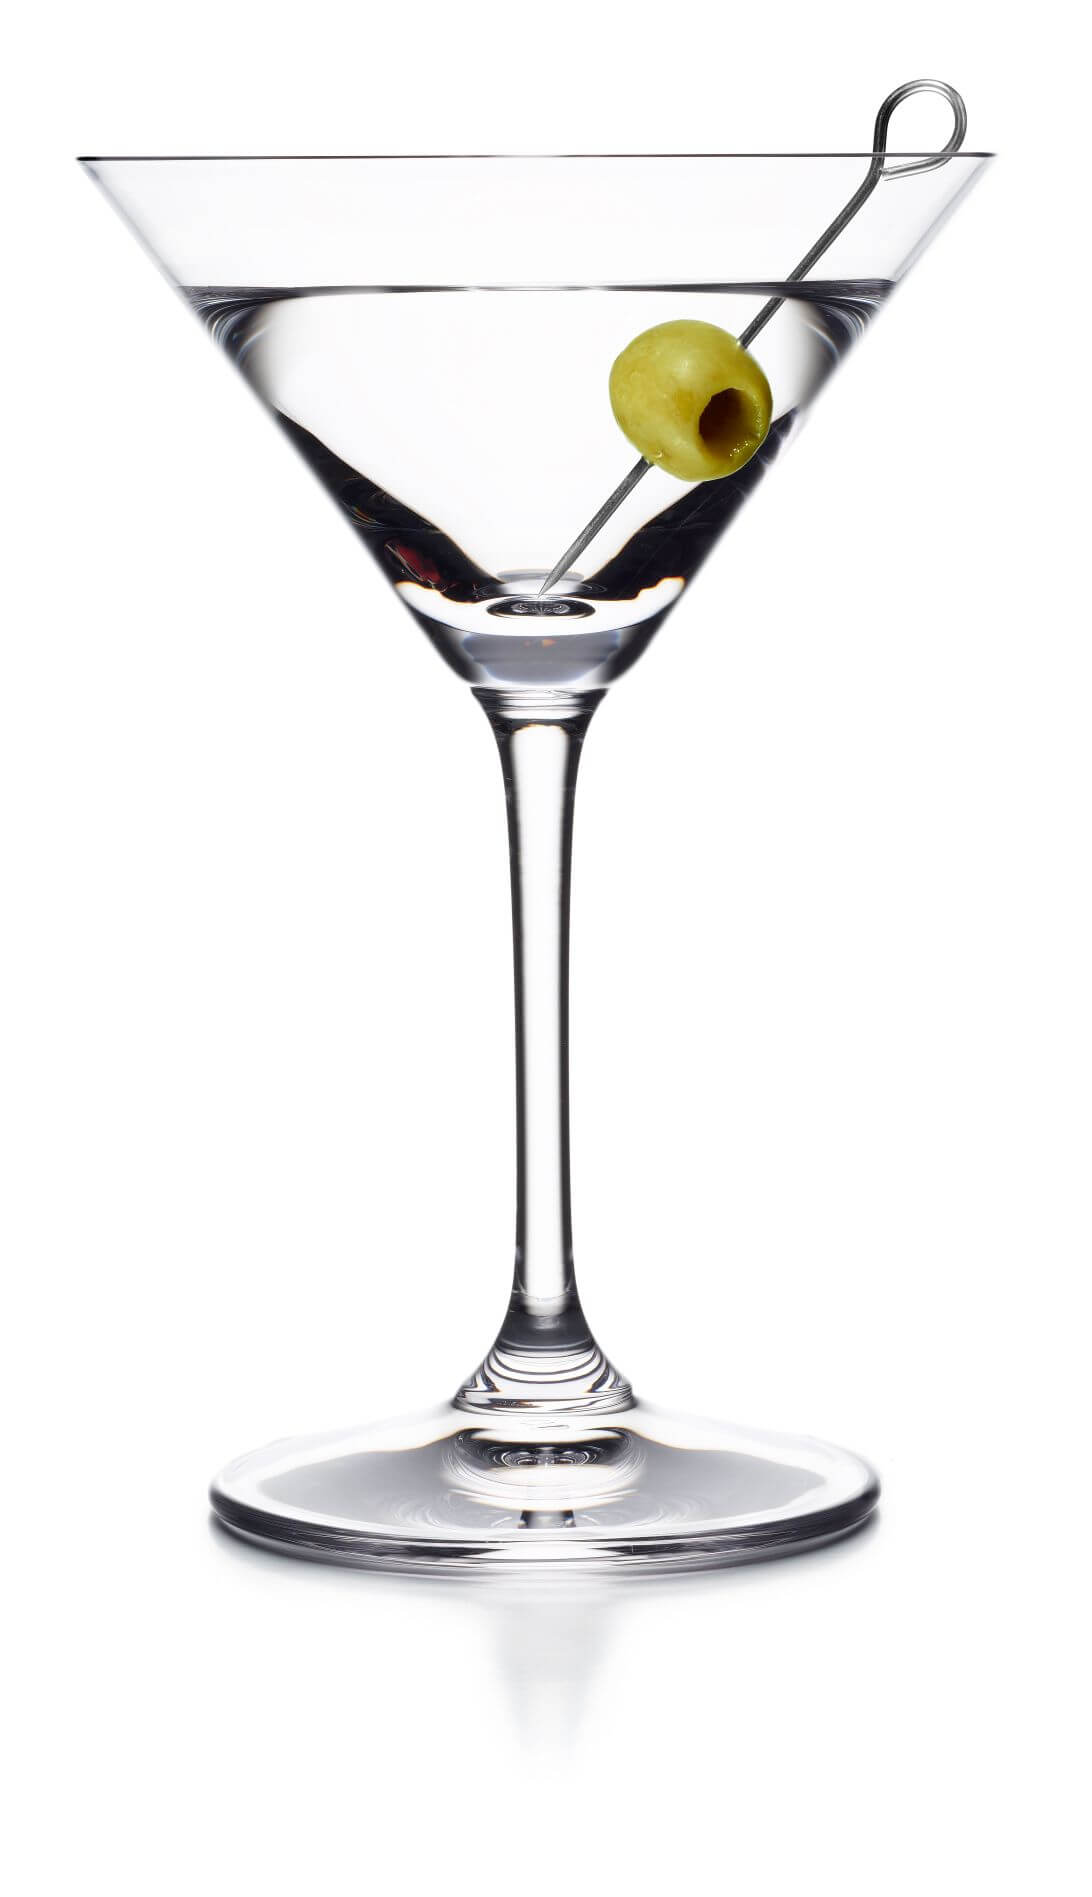 Thilbault told us that you should always have your martini stirred, not shaken, because it dilutes the mixture too much.